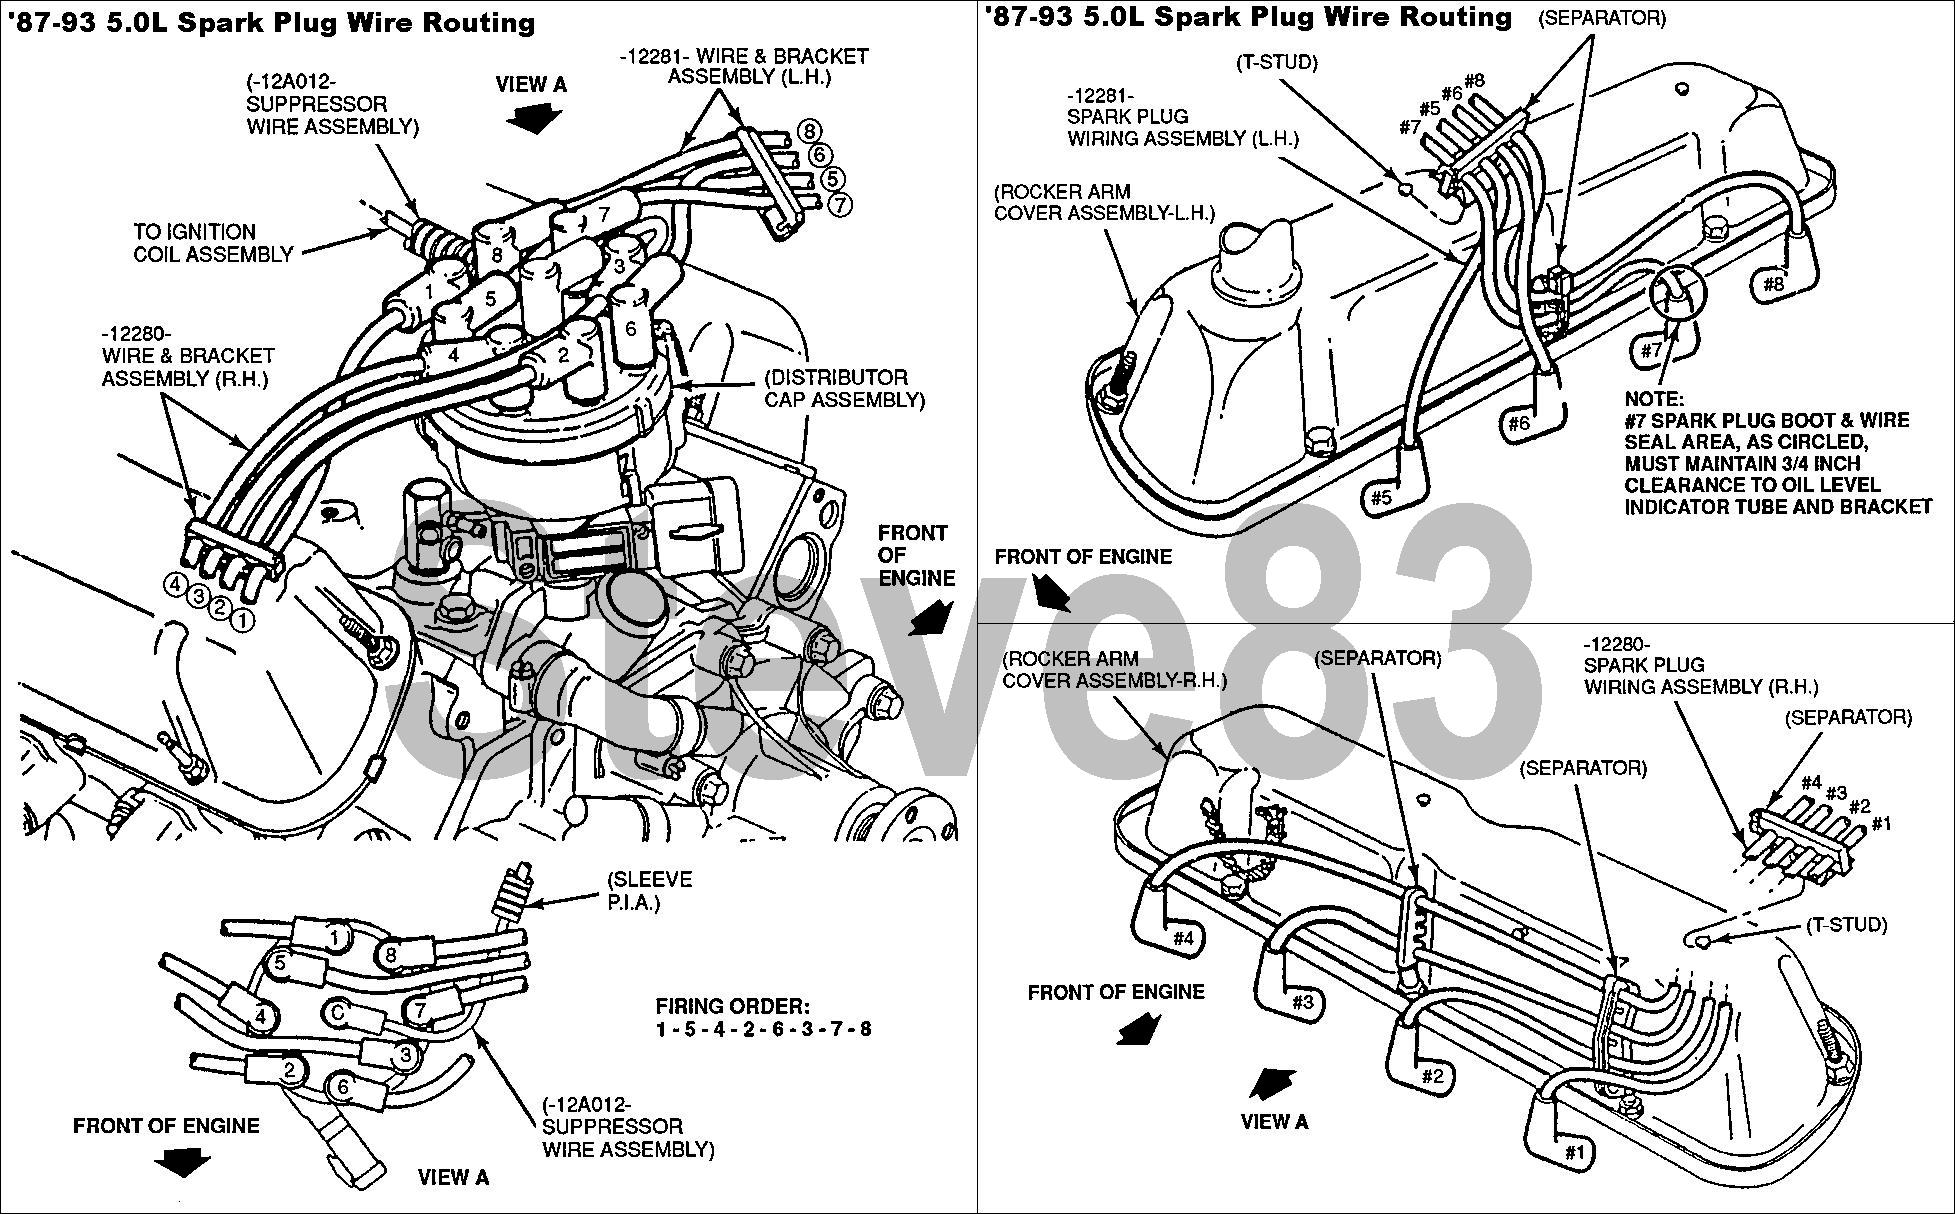 Ford 302 Spark Plug Wiring Diagram from www.supermotors.net